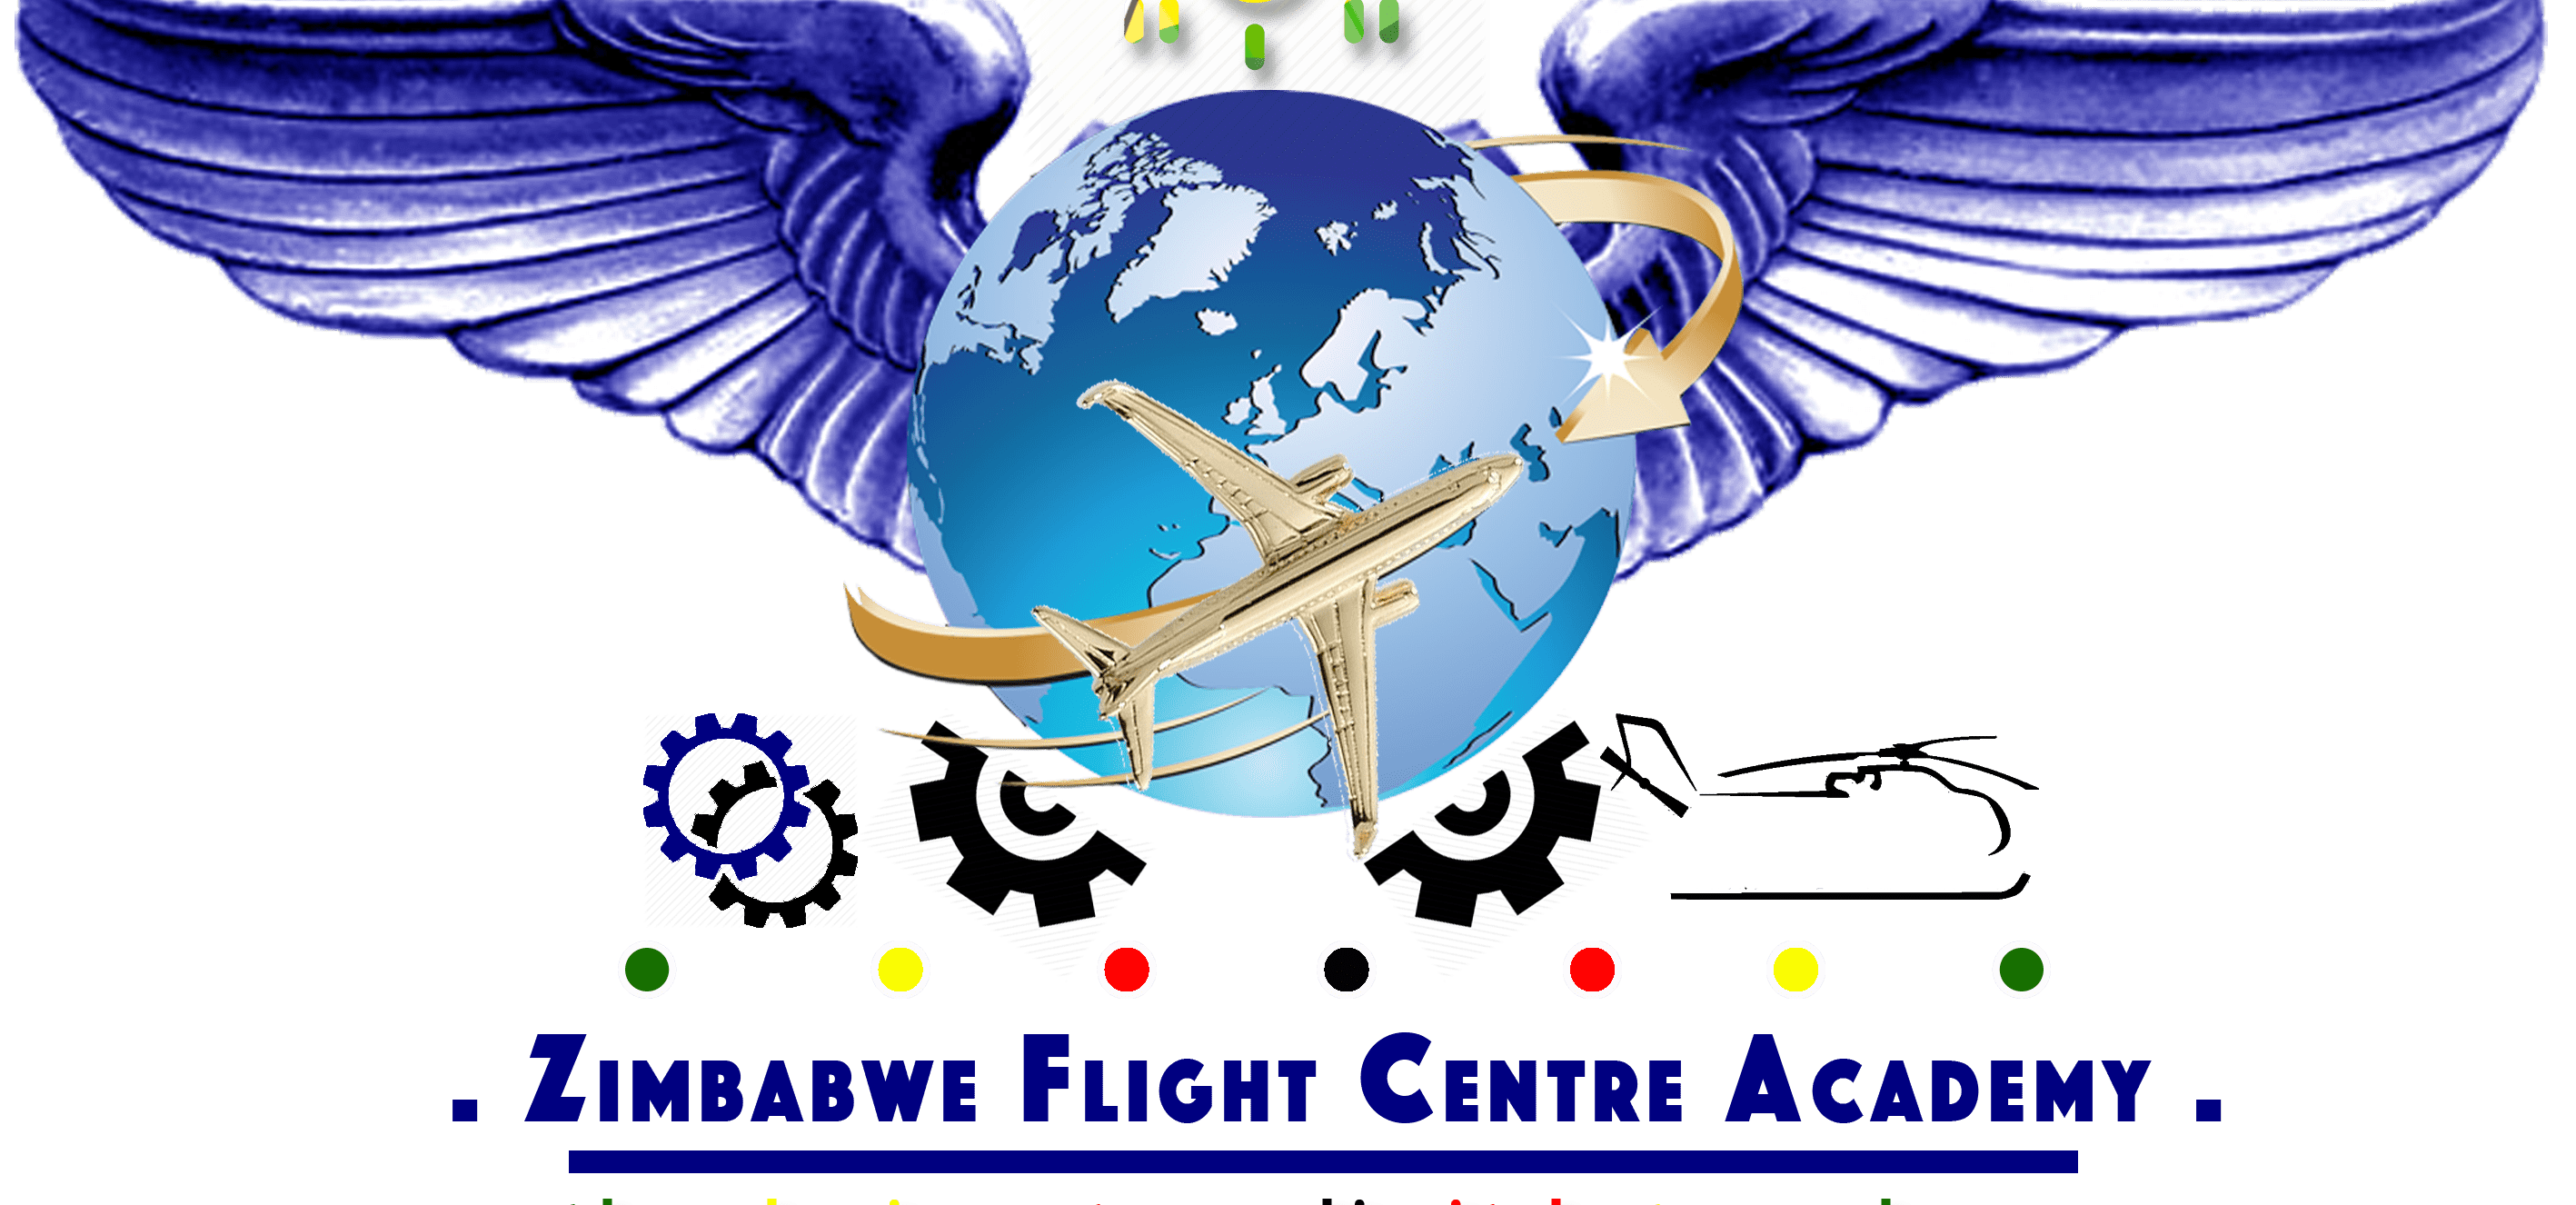 zimflight academy